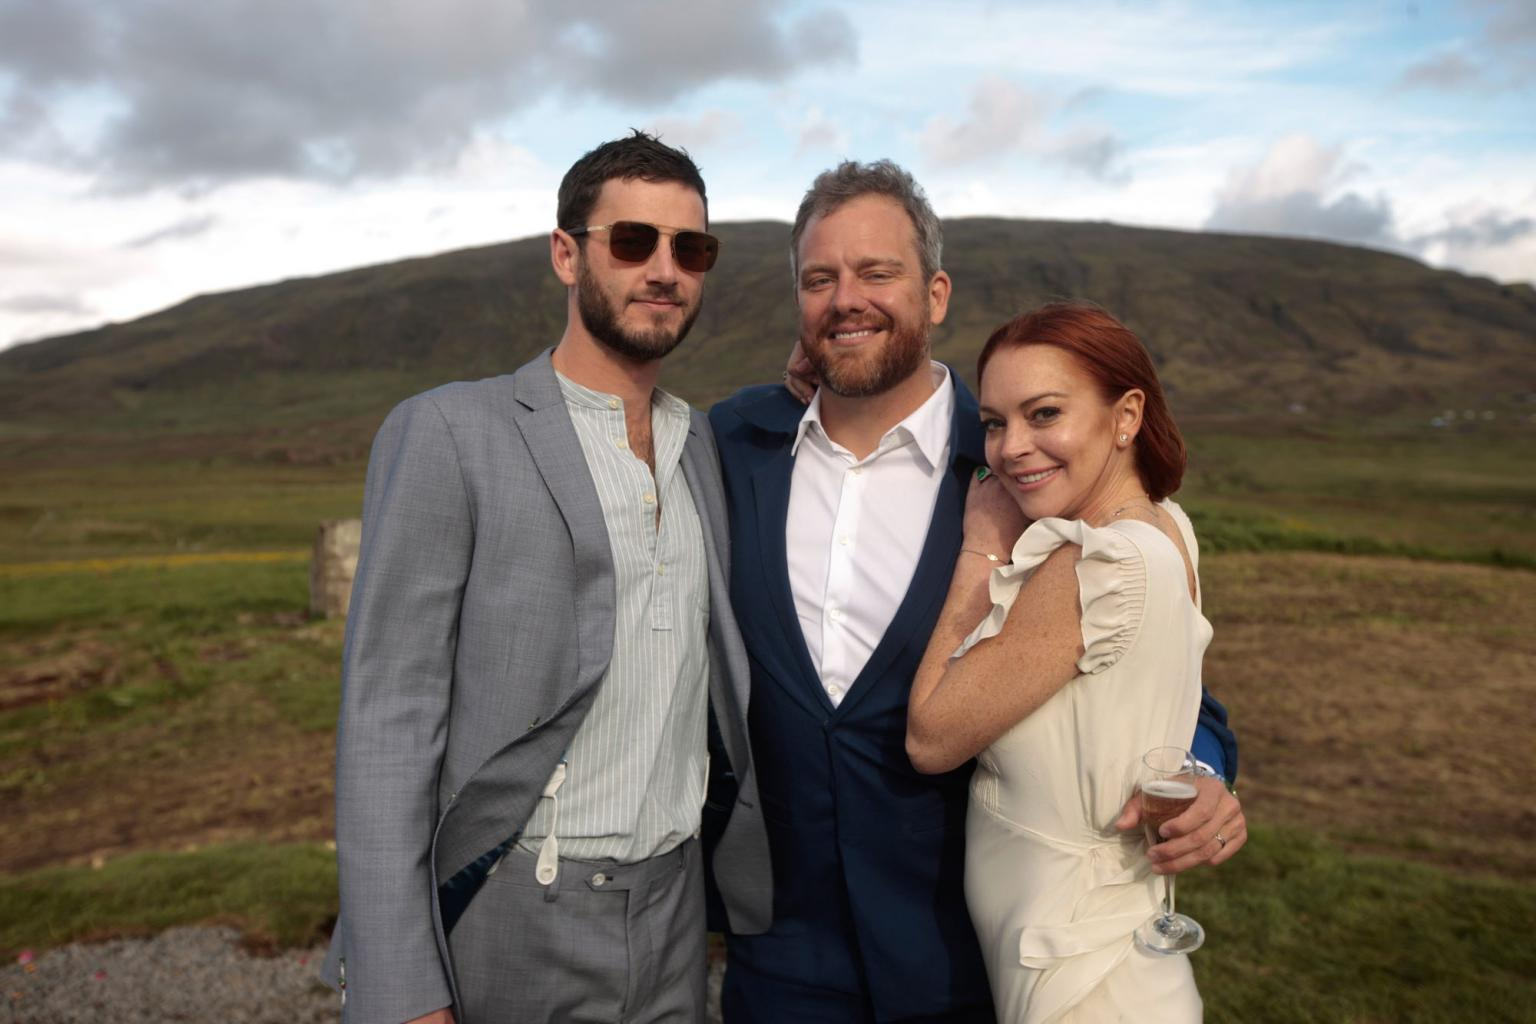 'What a Beautiful Day with Beautiful People': Lindsay Lohan Attends Friend's Wedding in Iceland